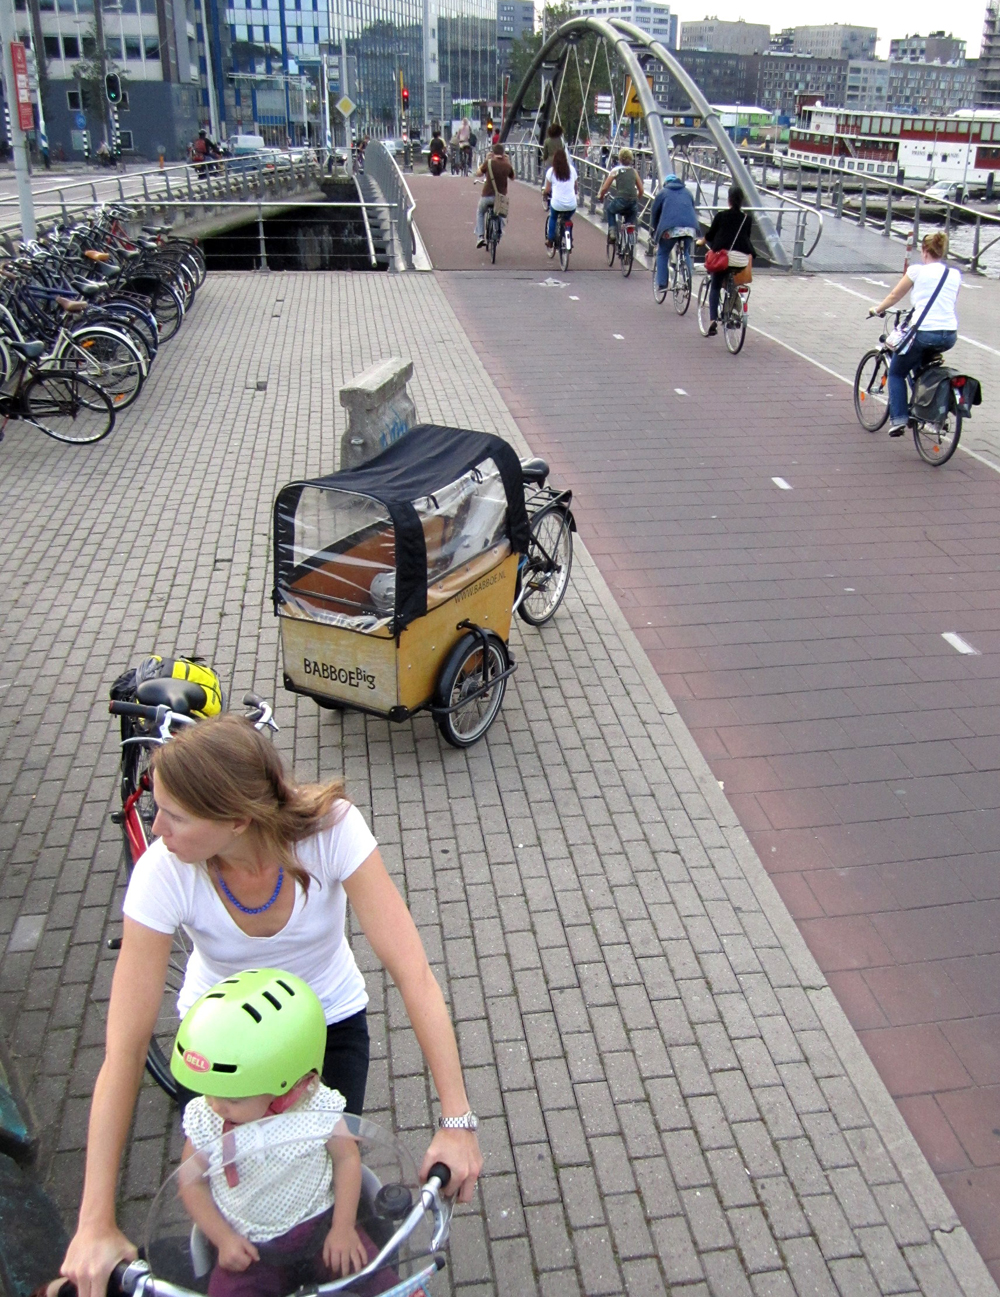 Founder, Megan Ramey, biking in Amsterdam on family vacation with her 2 year old daughter. The vision for North America of normal living by bike is why she has pledged to donate 25% of Bikabout's annual revenue every year.